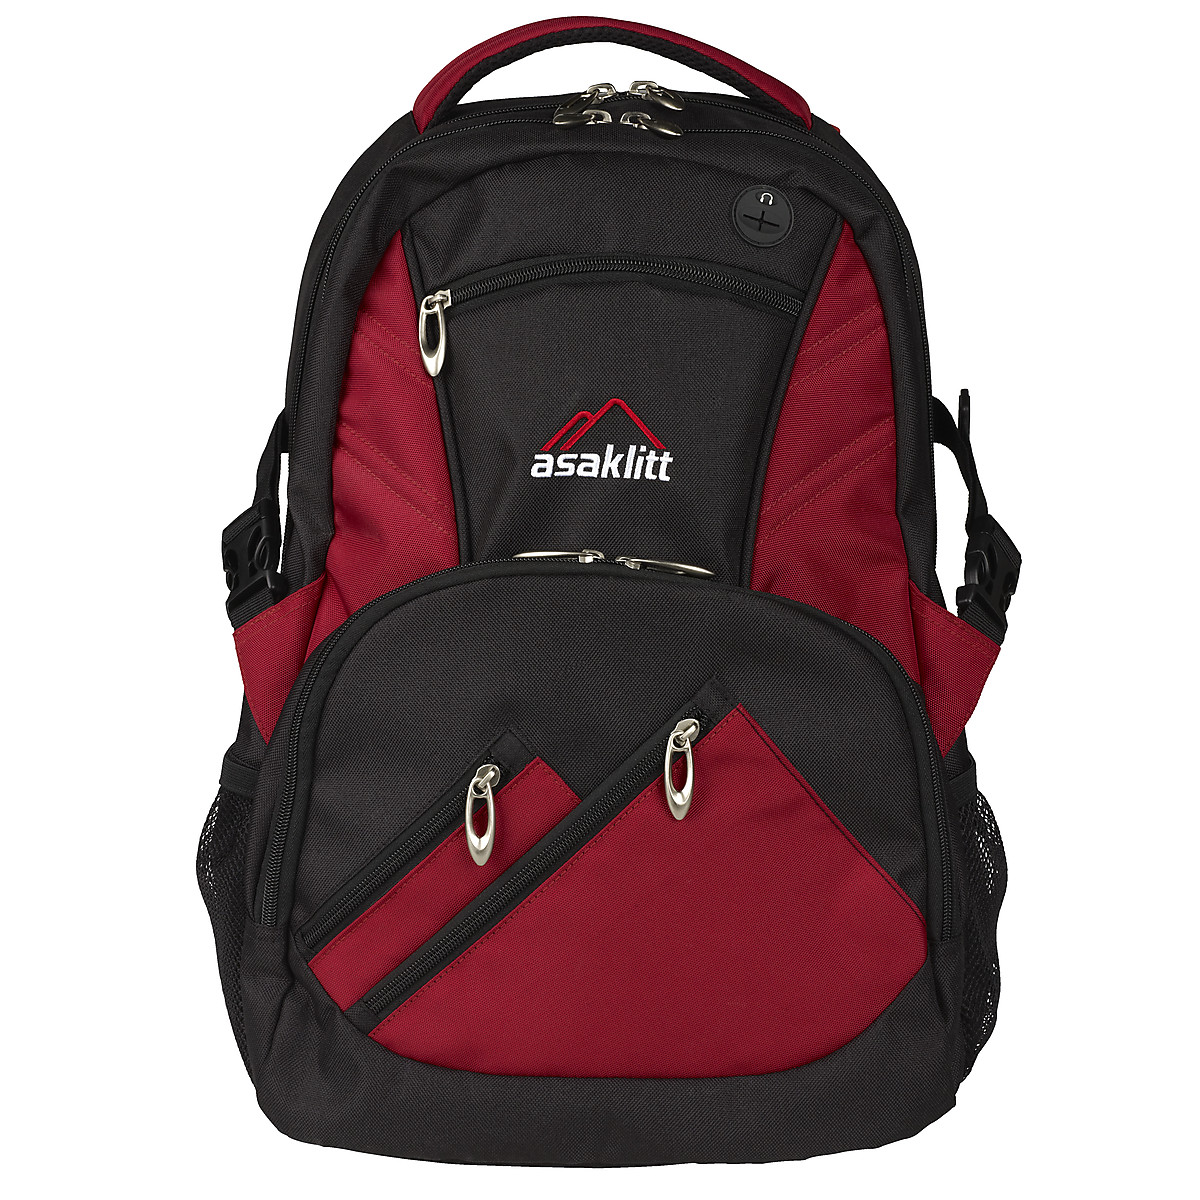 Asaklitt 35-Litre Backpack